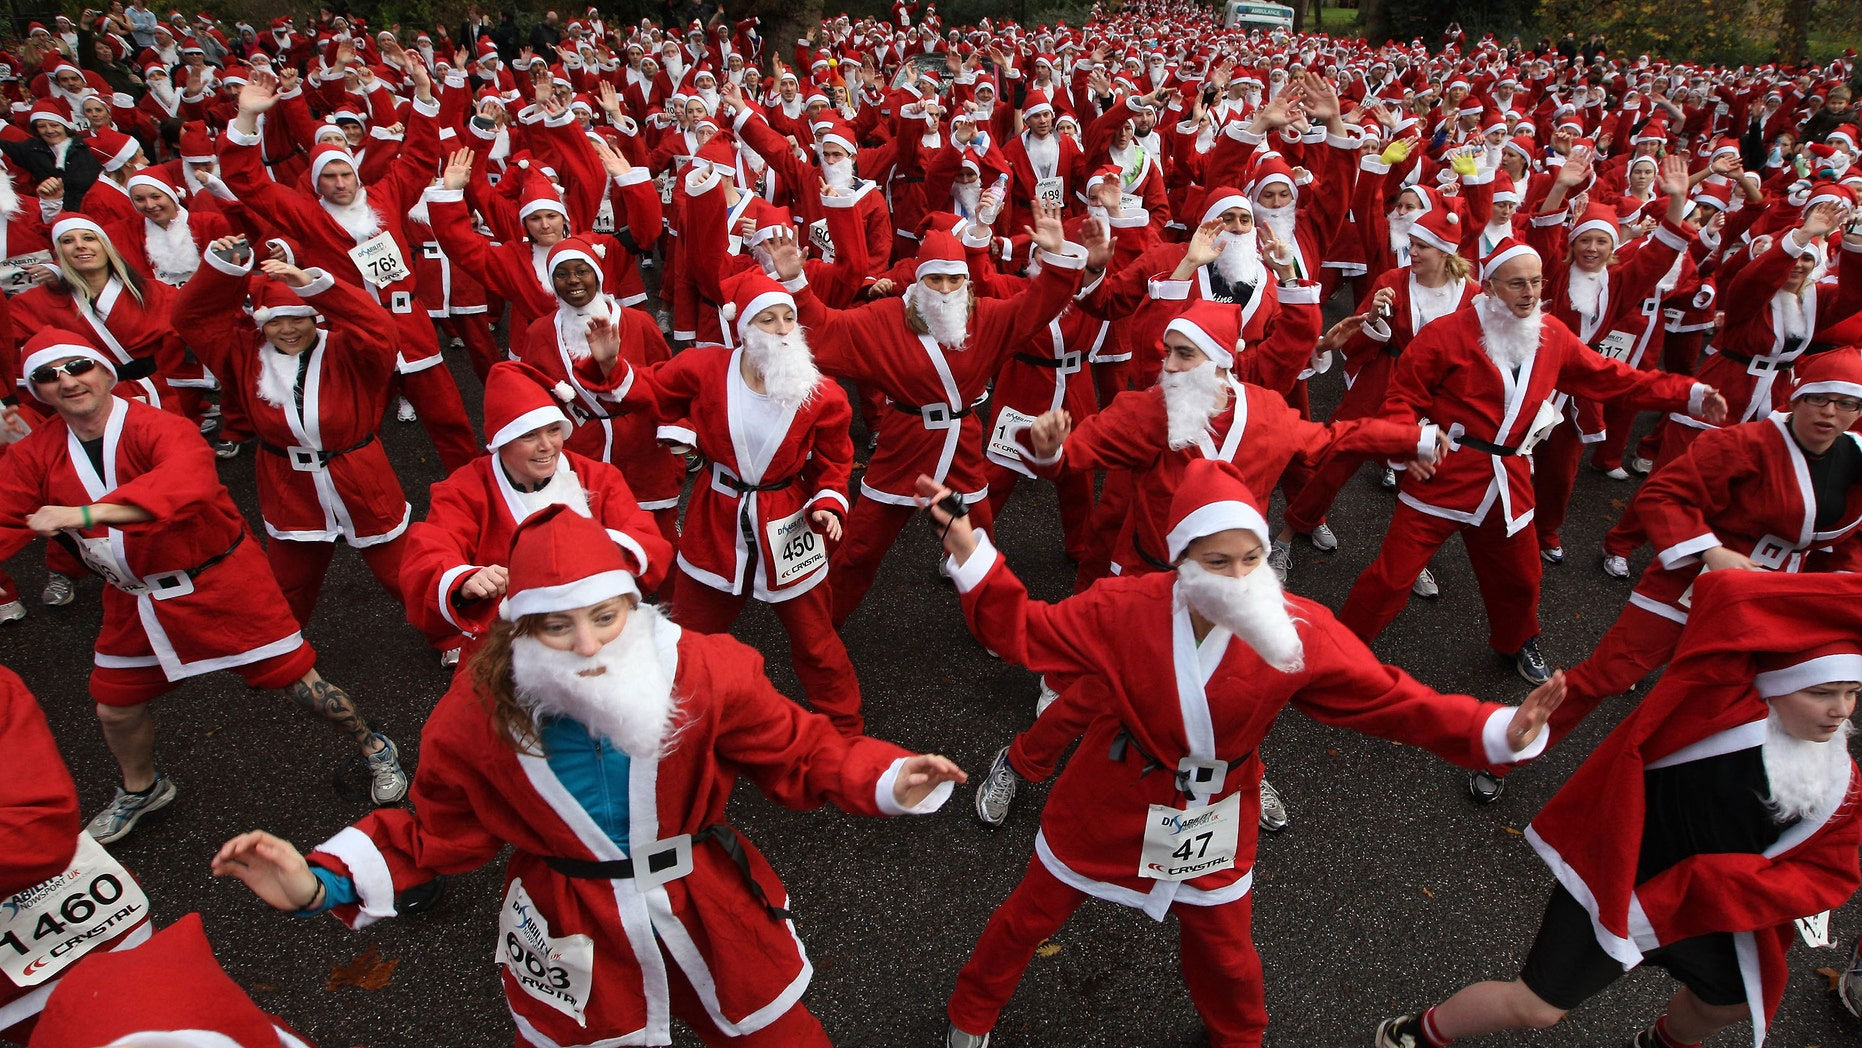 Charity runners dressed as Santa Claus warm up before taking part in the Disability Snowport UK fun run in London, England. (Photo by Peter Macdiarmid/Getty Images)